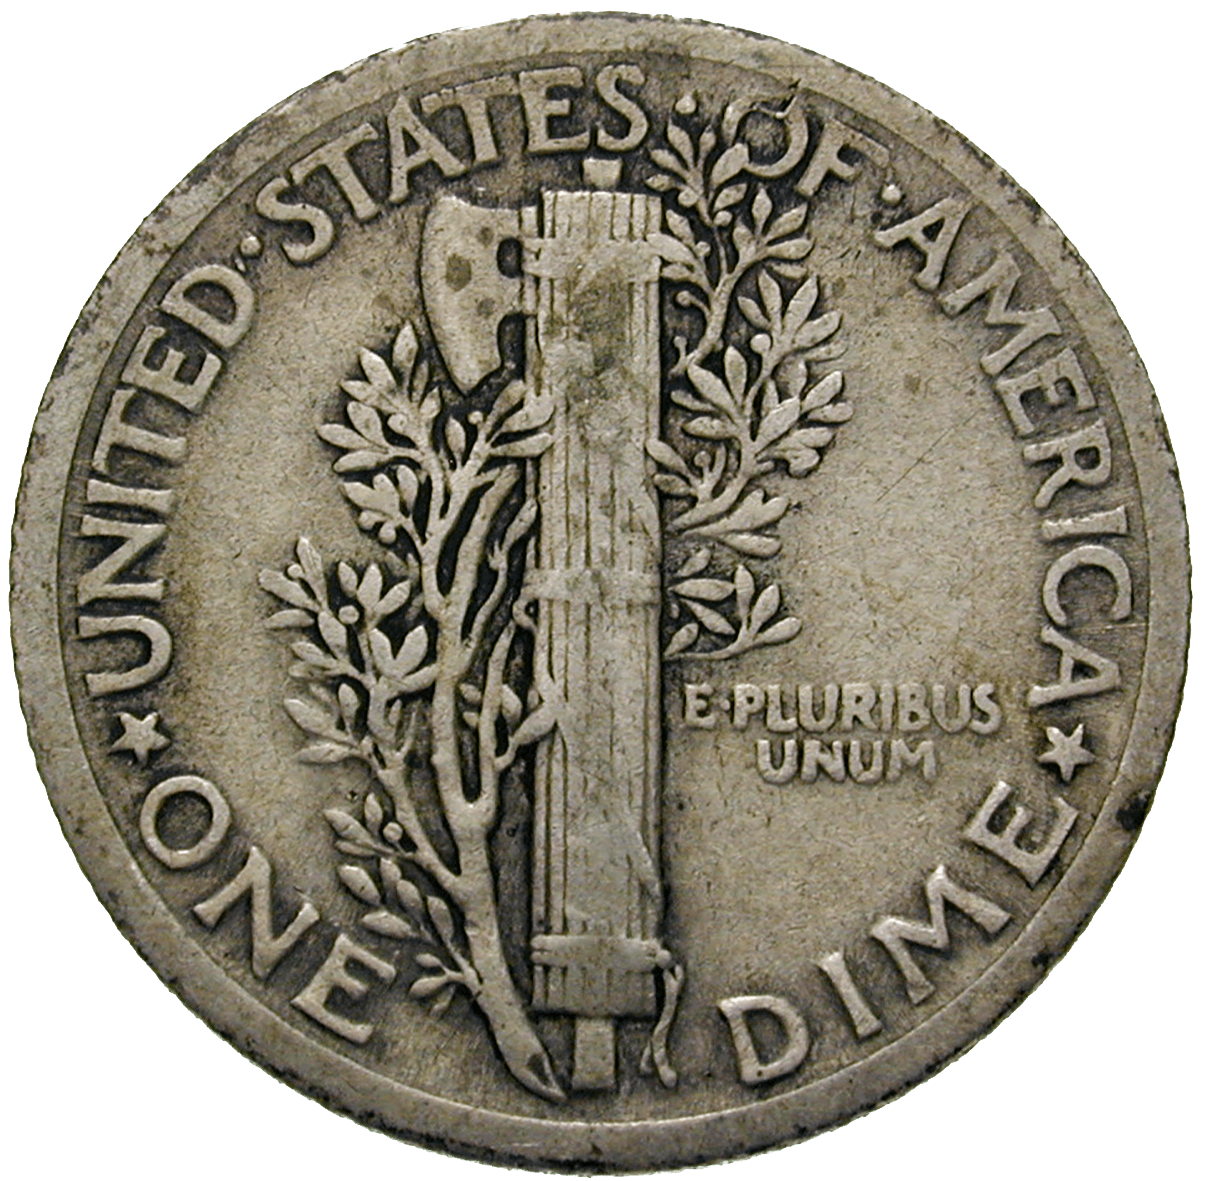 United States of America, 10 Cent 1924 (reverse)